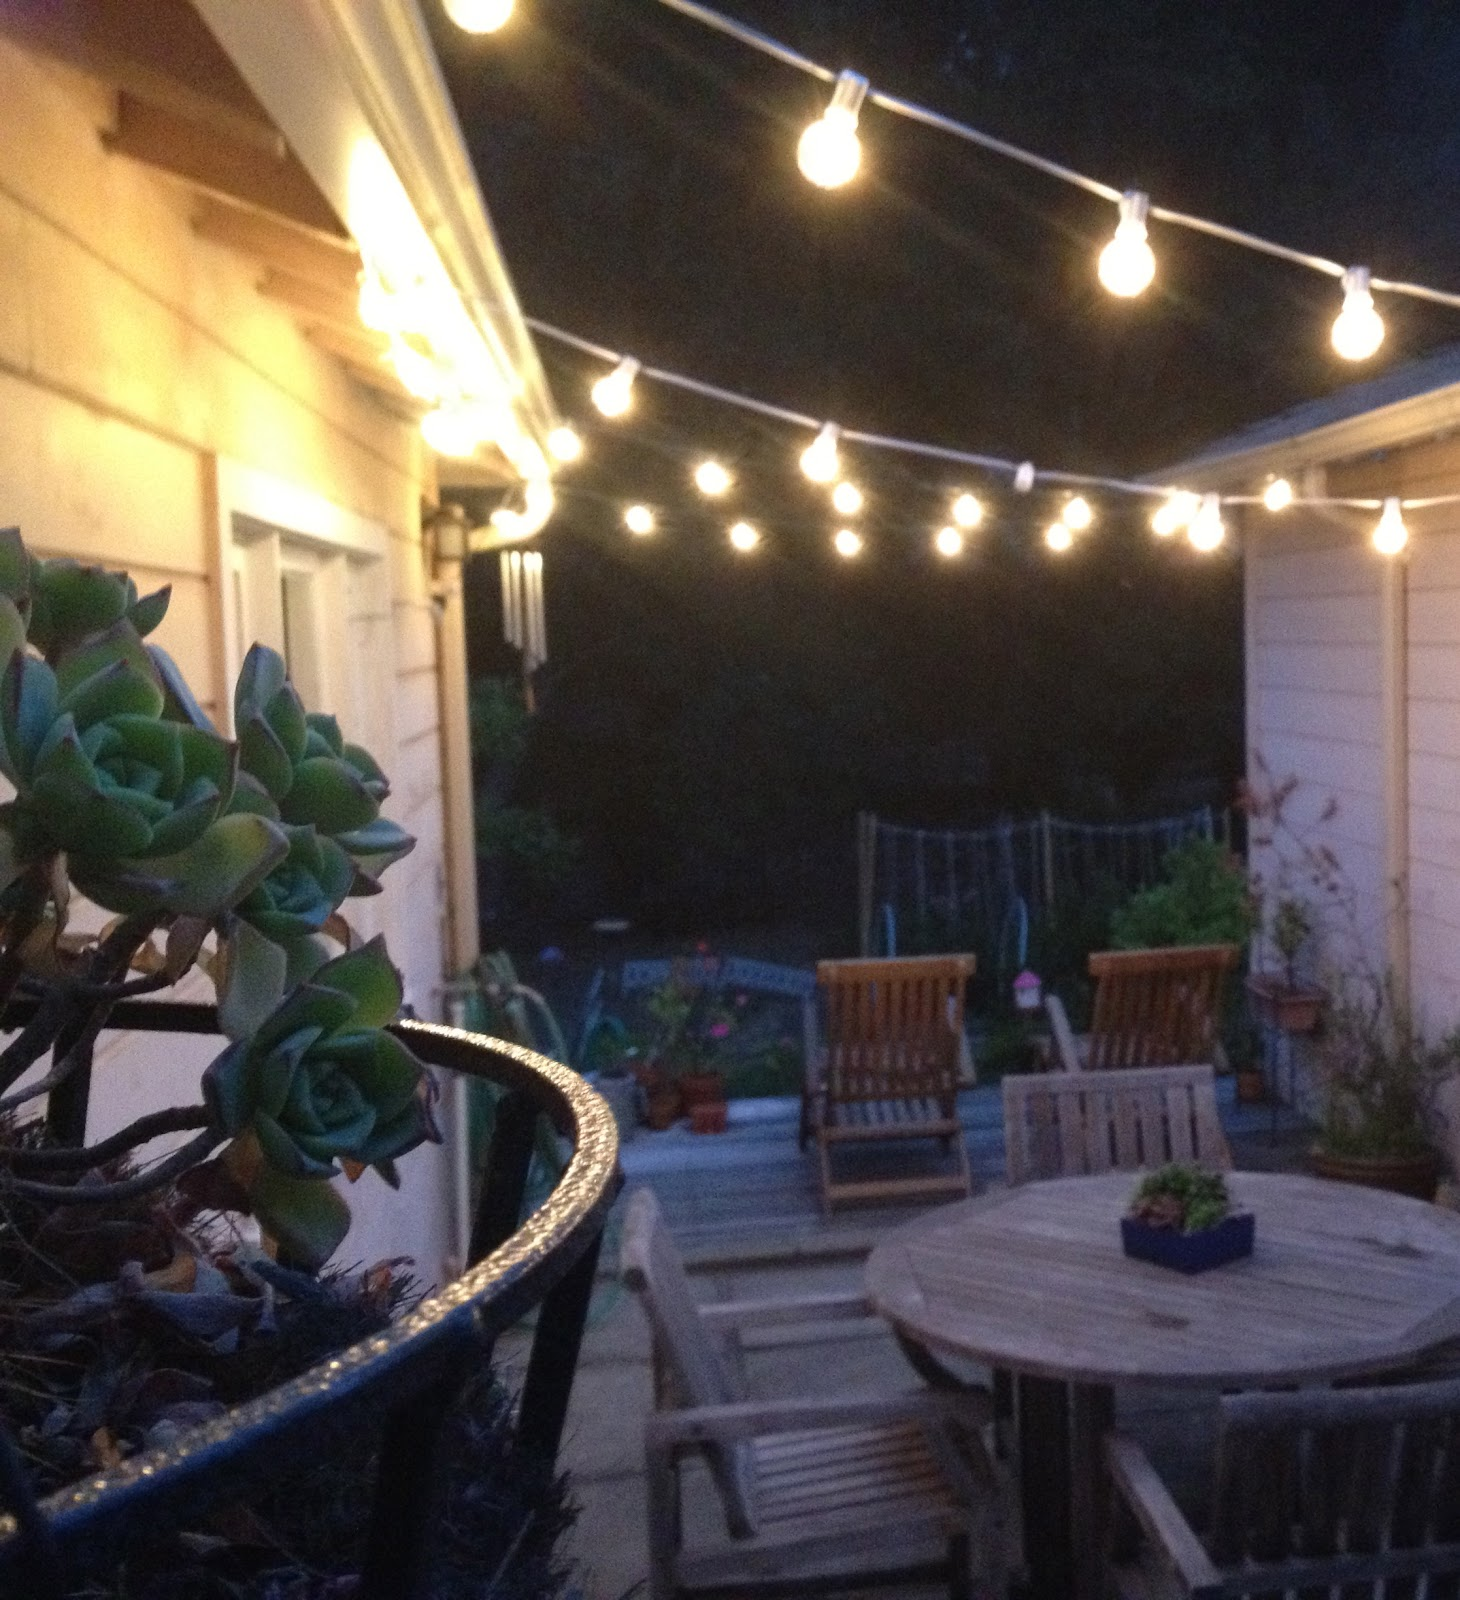 Outdoor Lights On Patio: Backyard Entertaining - Copycatchic